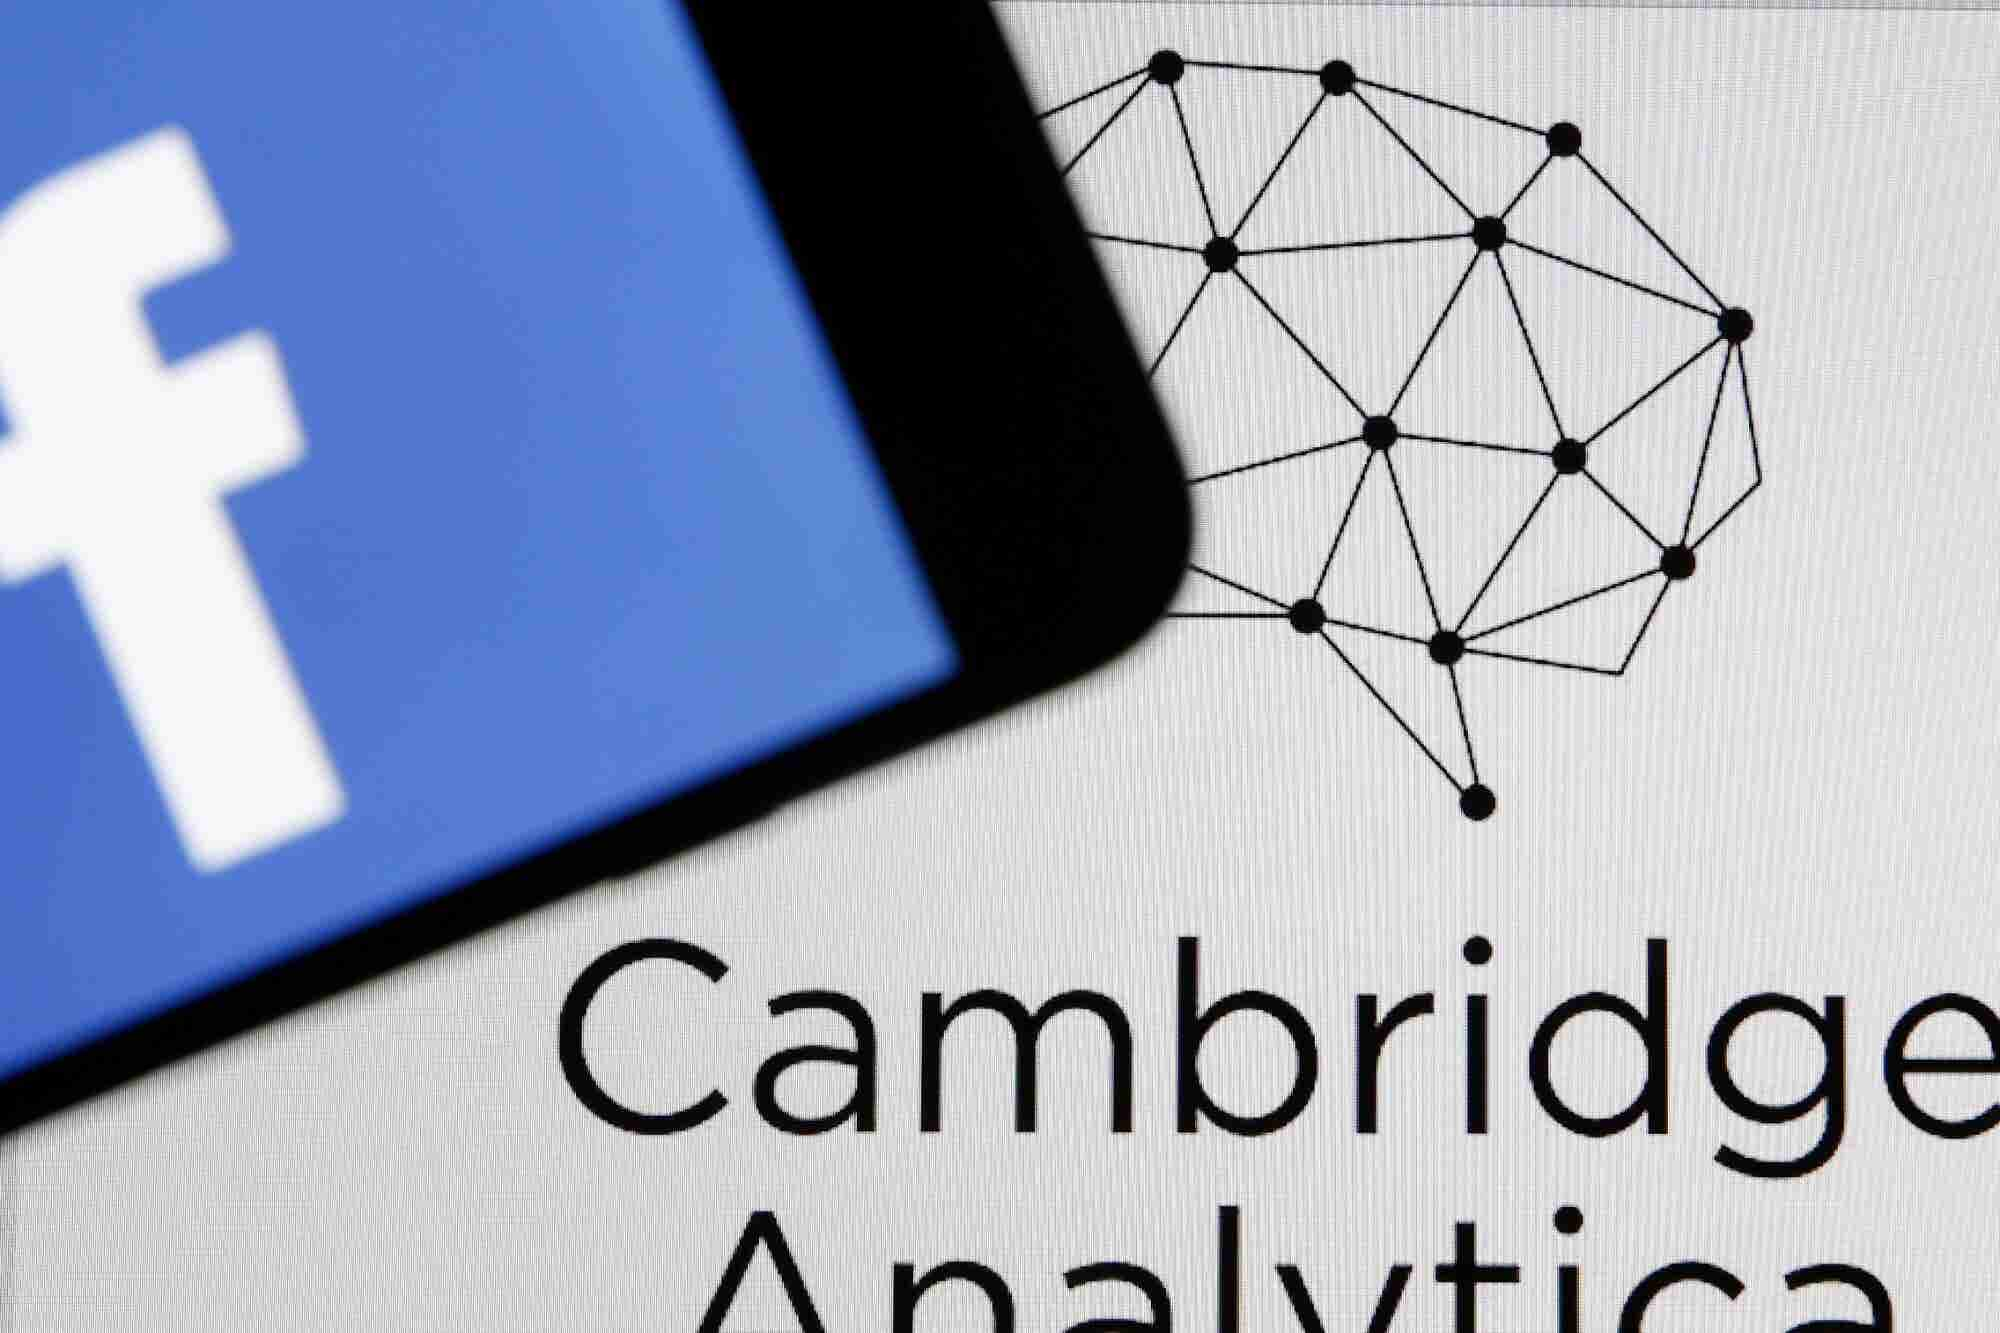 Will Facebook Advertising Survive After the Cambridge Analytica Scanda...